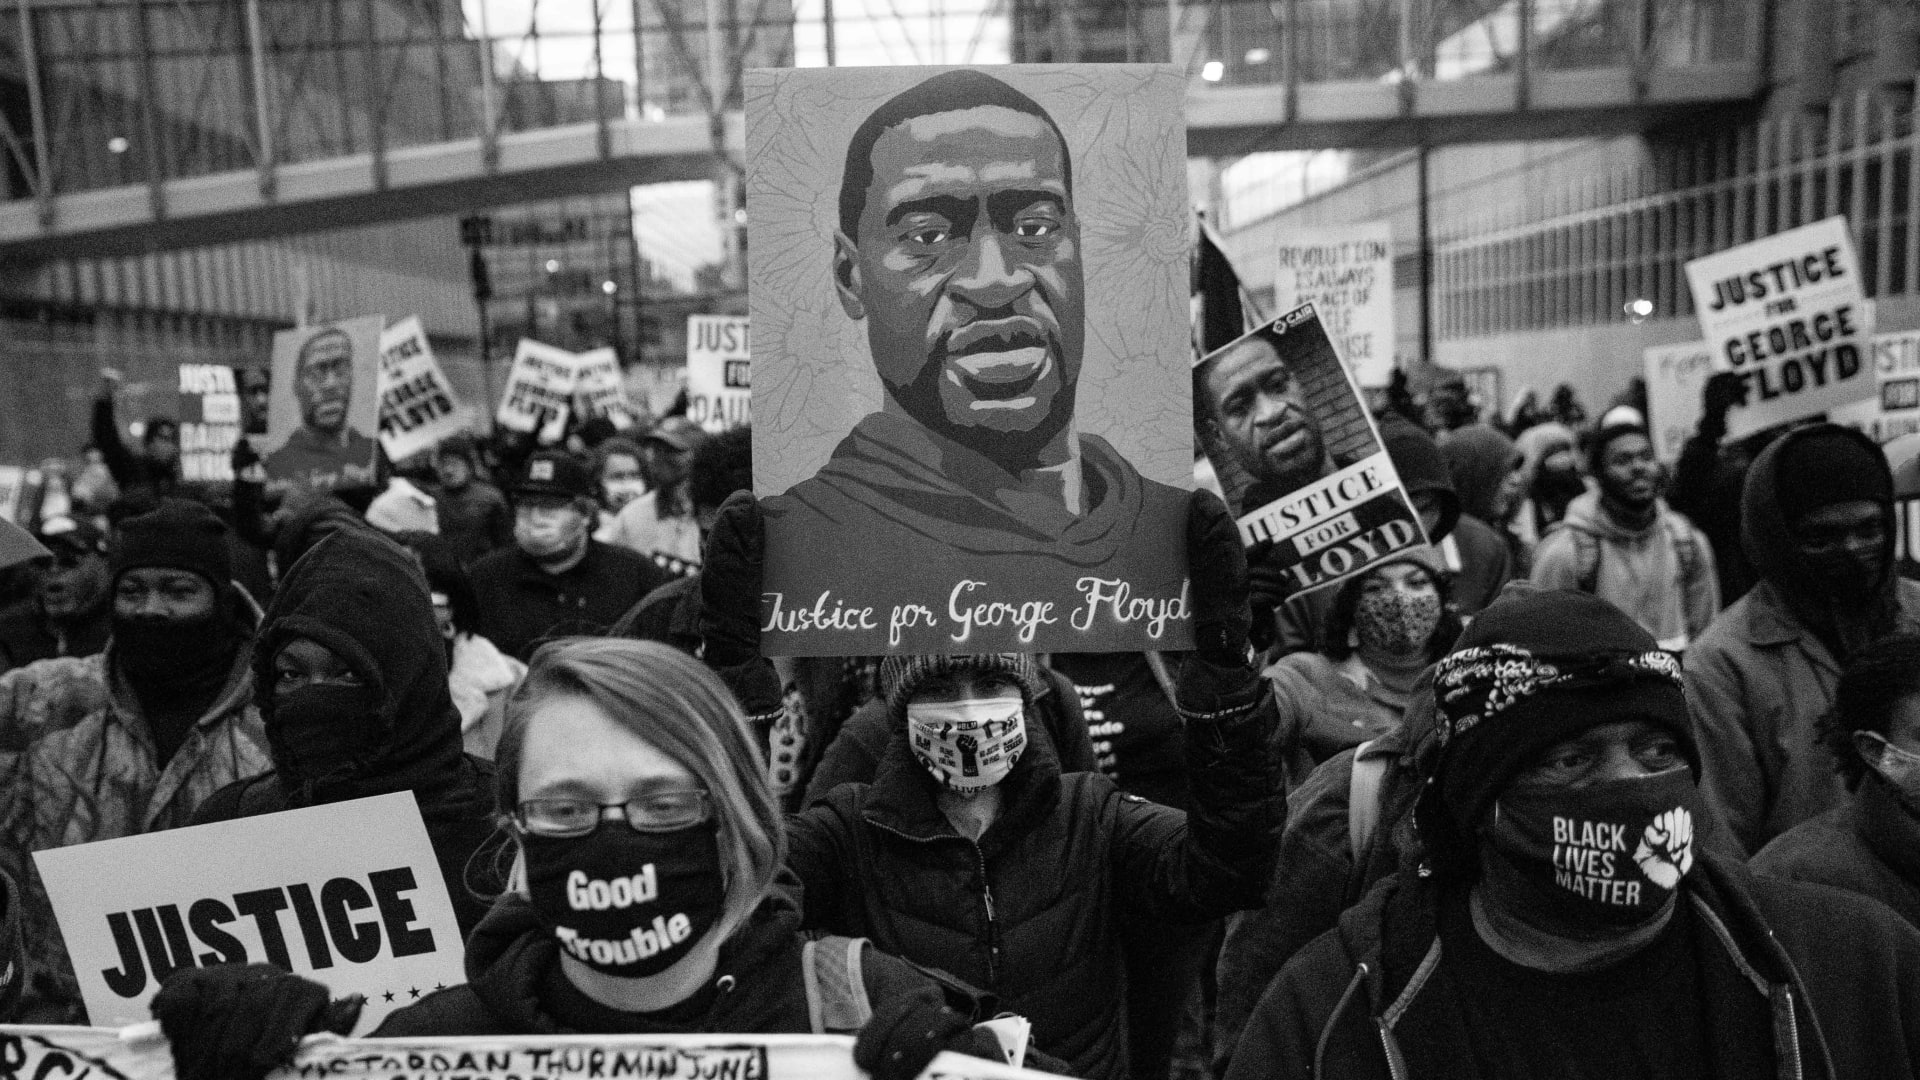 How Corporate America Has Responded 1 Year Since the Murder of George Floyd